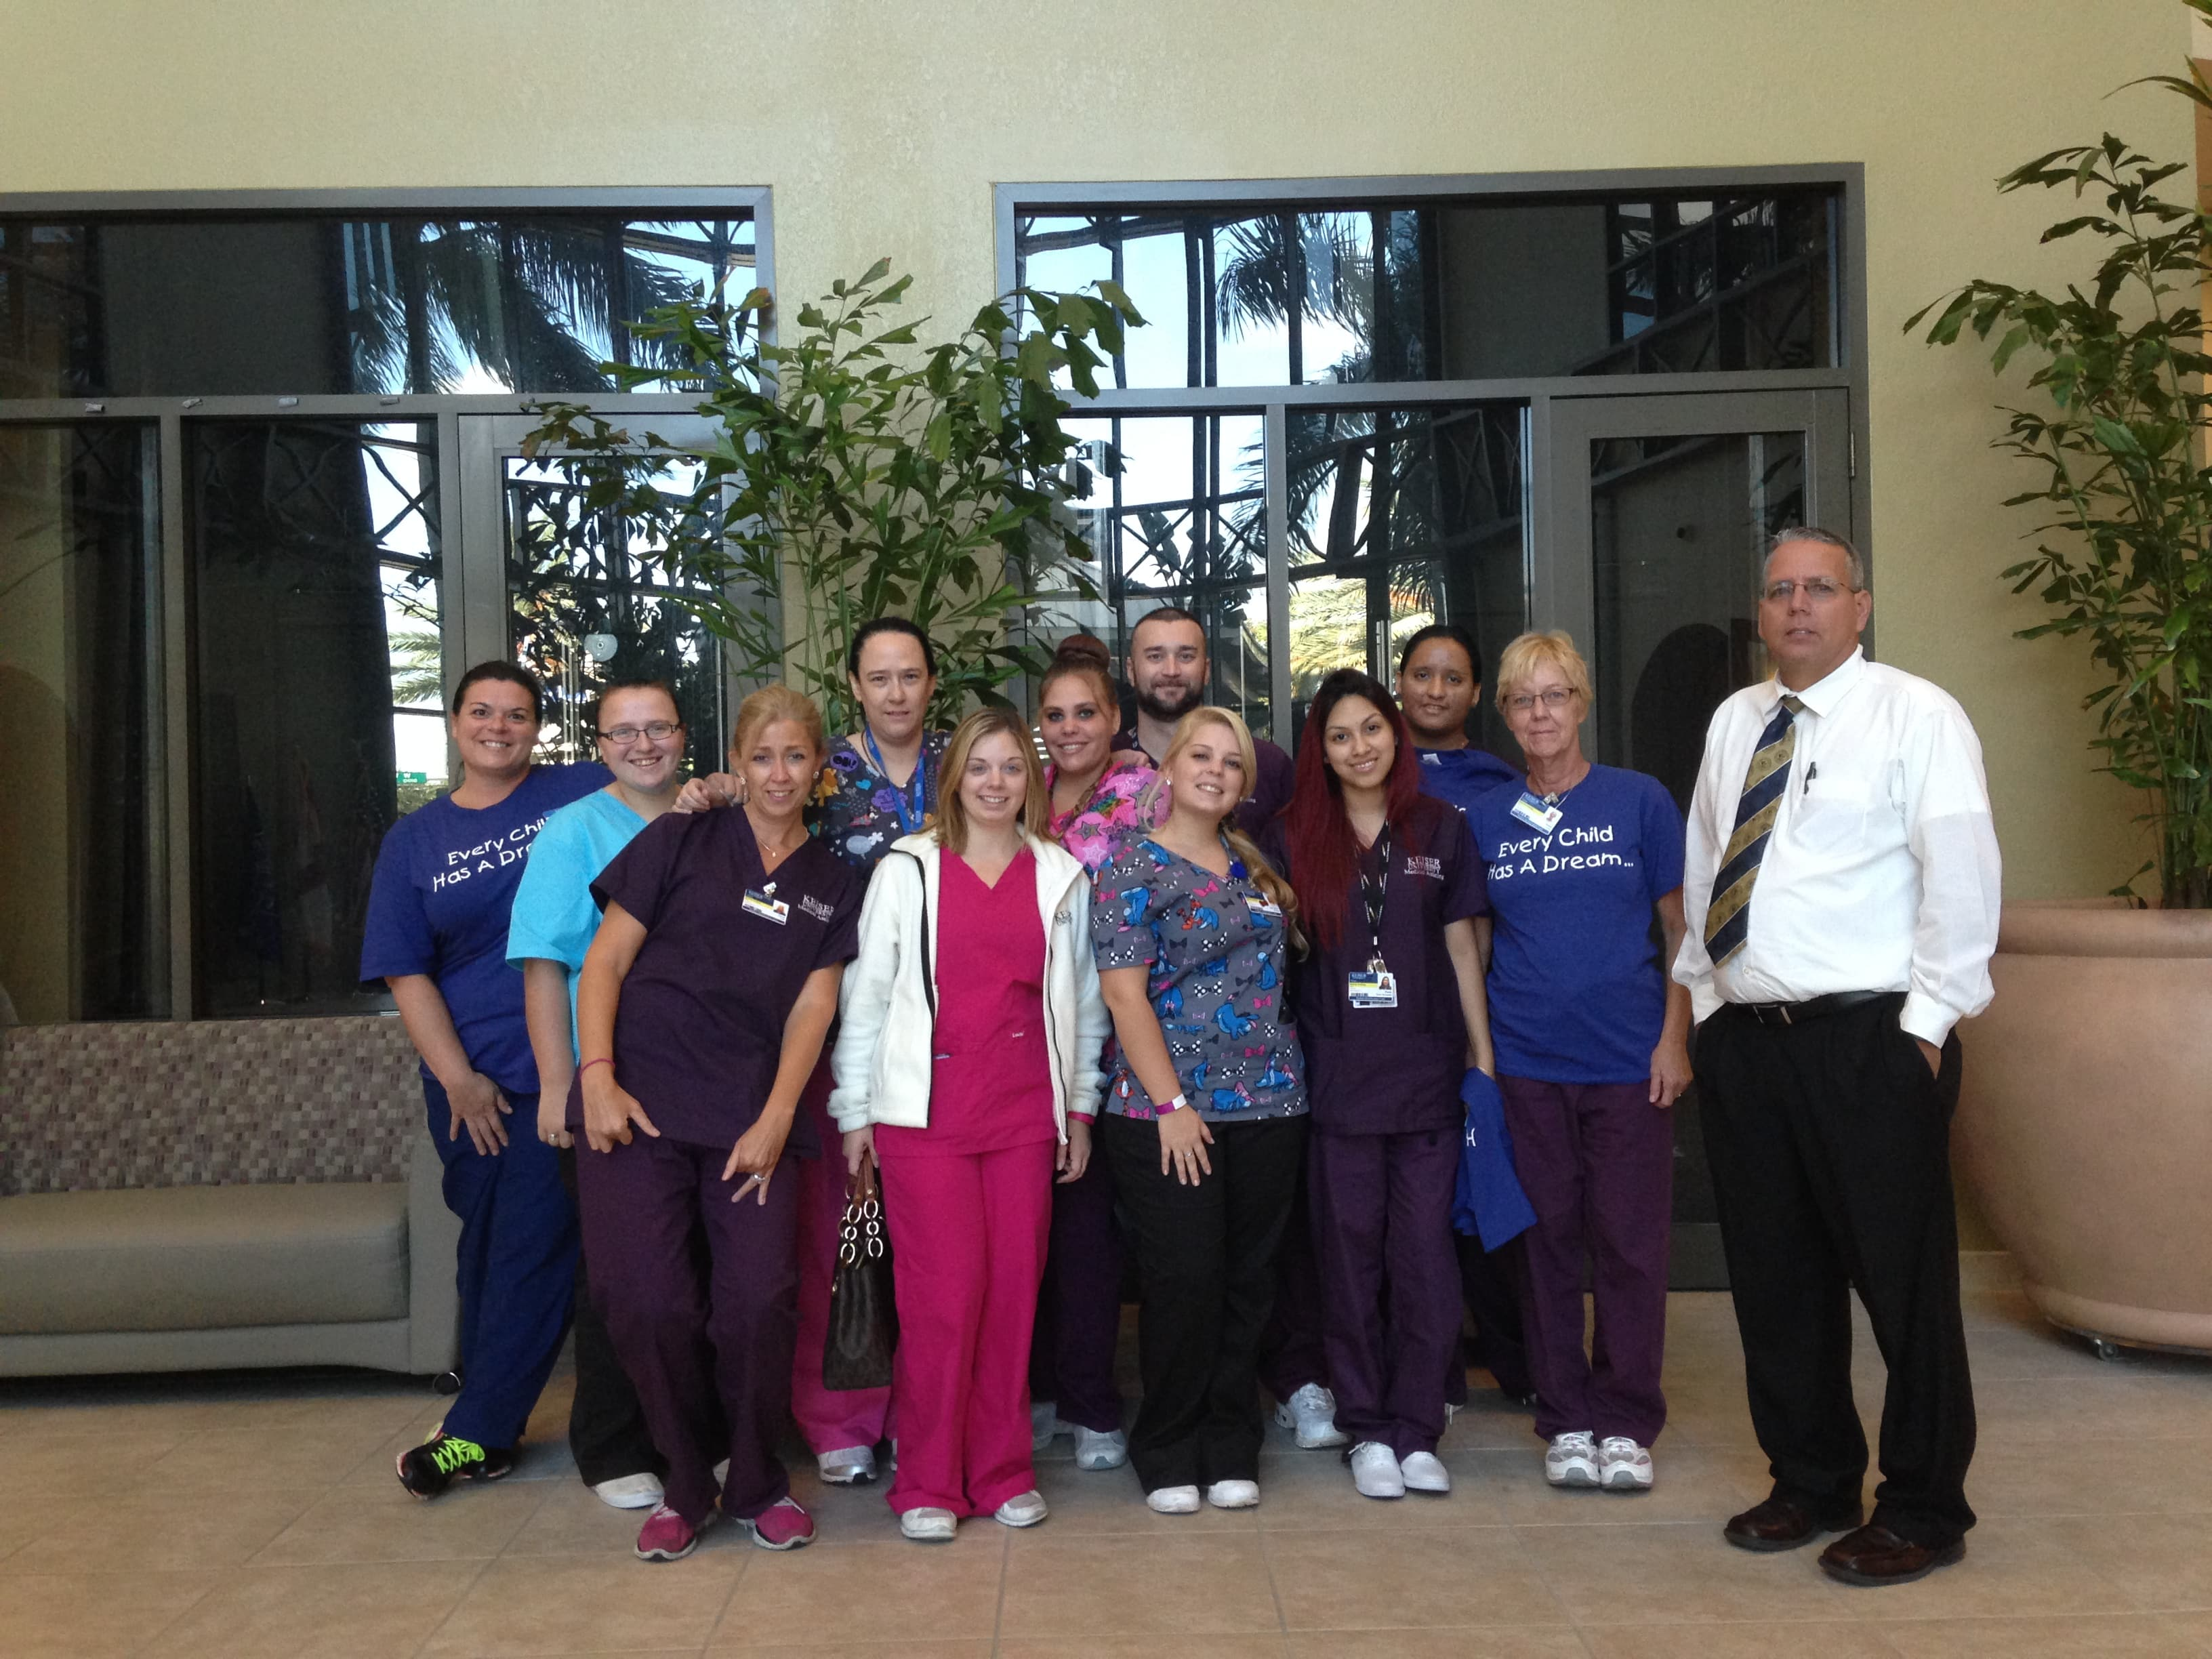 Medical Assisting Students in Tampa Collect Funds for the Children's Dream Fund